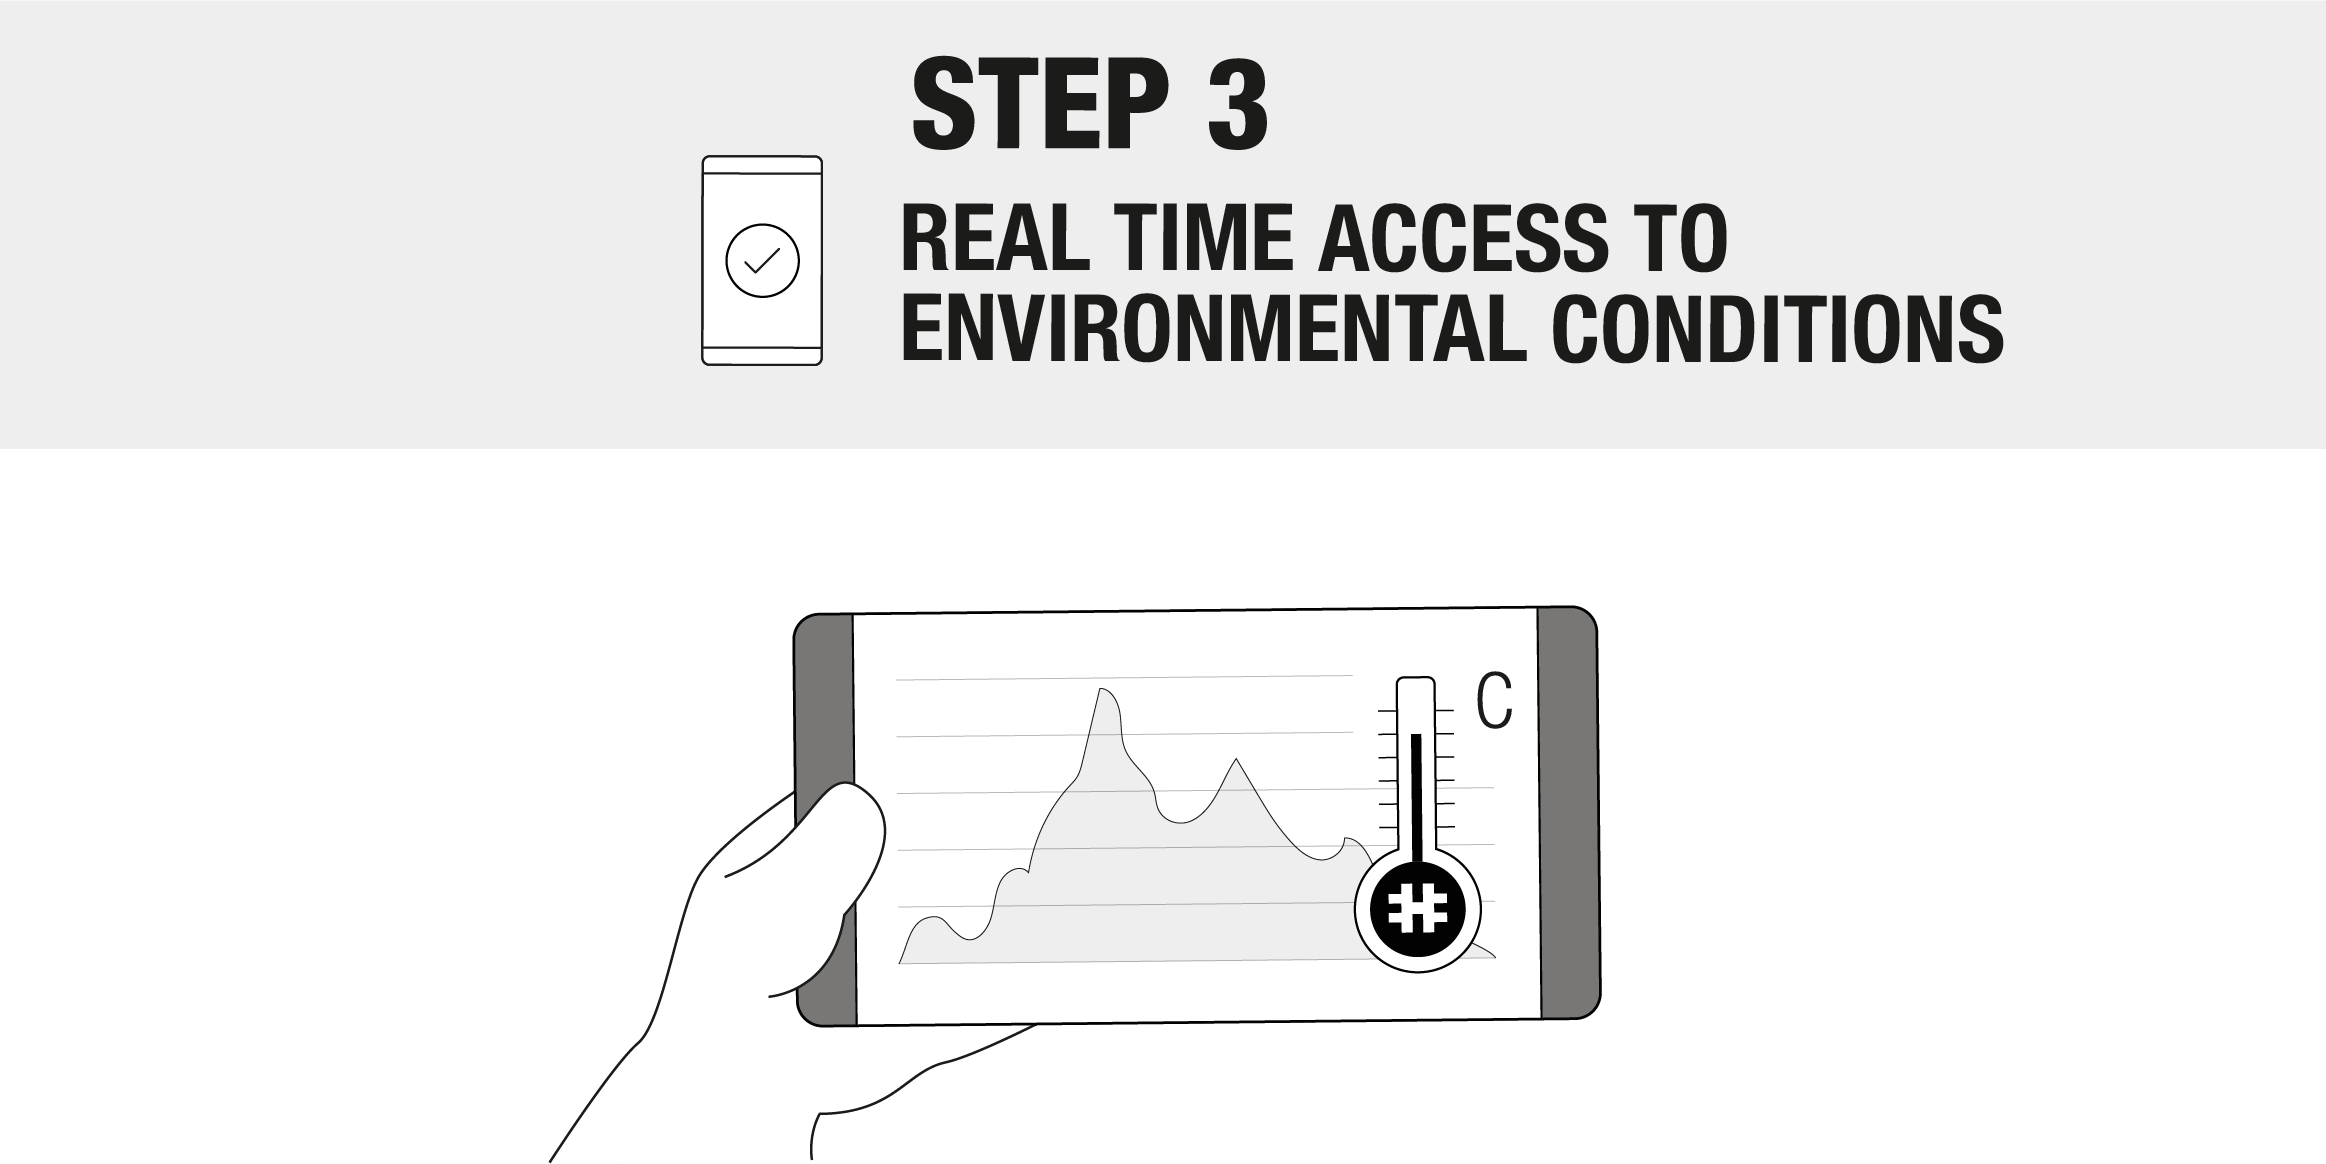 Real_Time_Access_to_Environmental_conditions.png